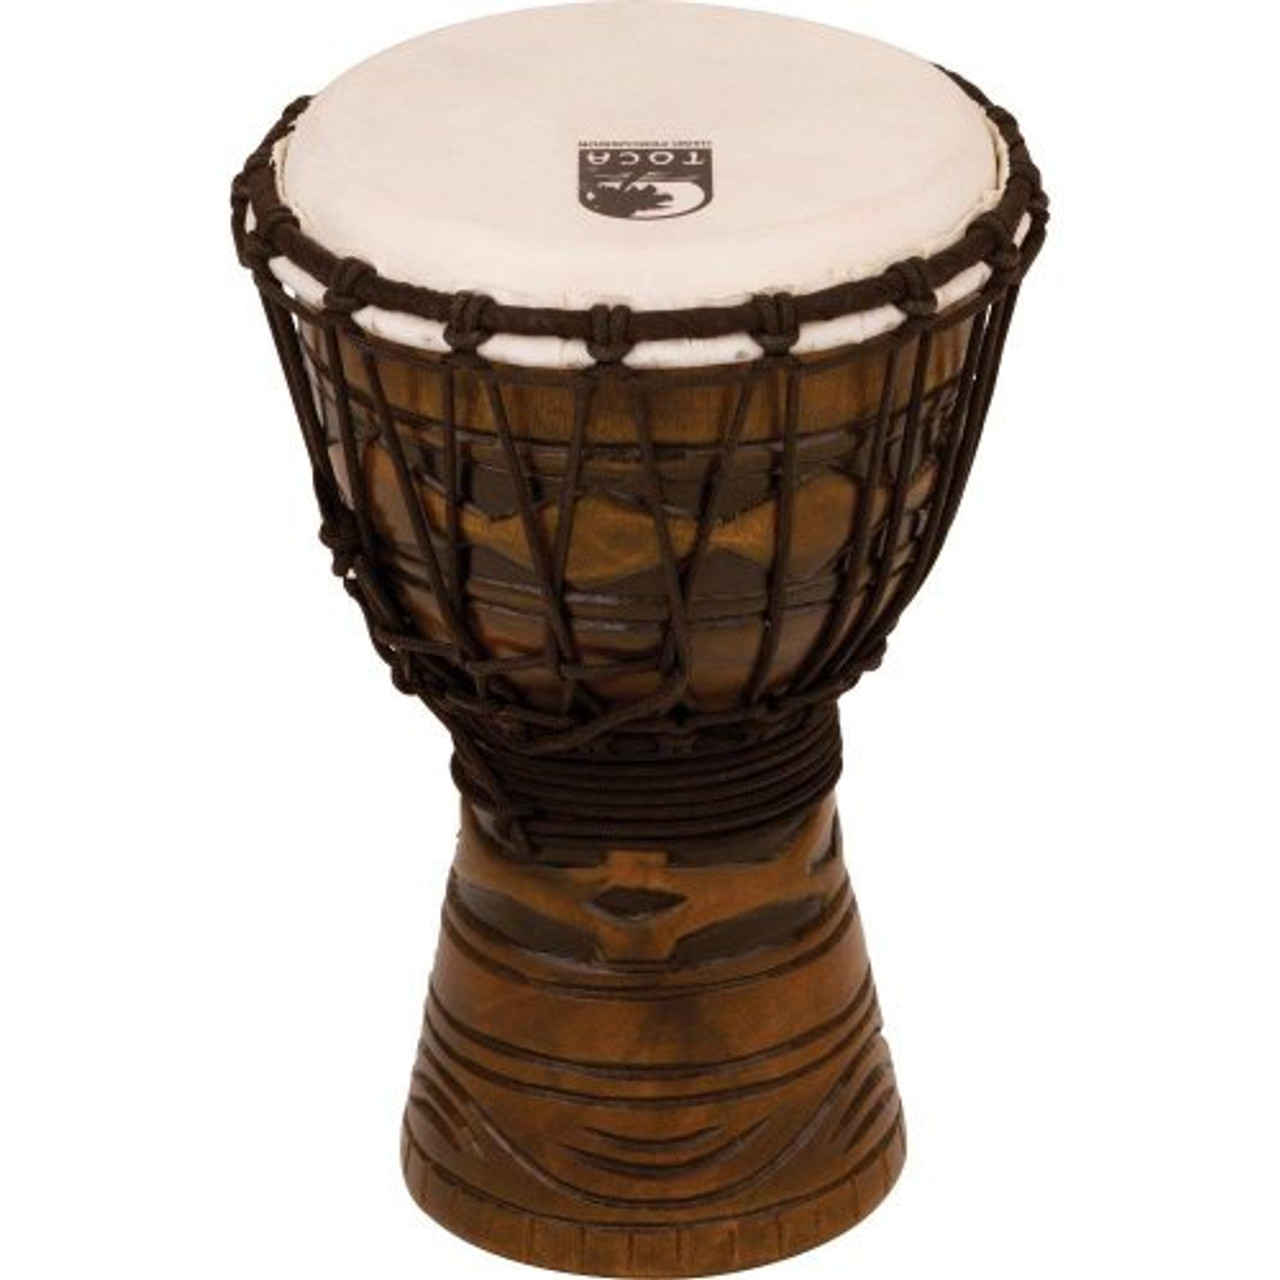 Toca a TODJ-7AM Origins Series Rope Tuned Wood 7-Inch Djembe - African Mask Finish